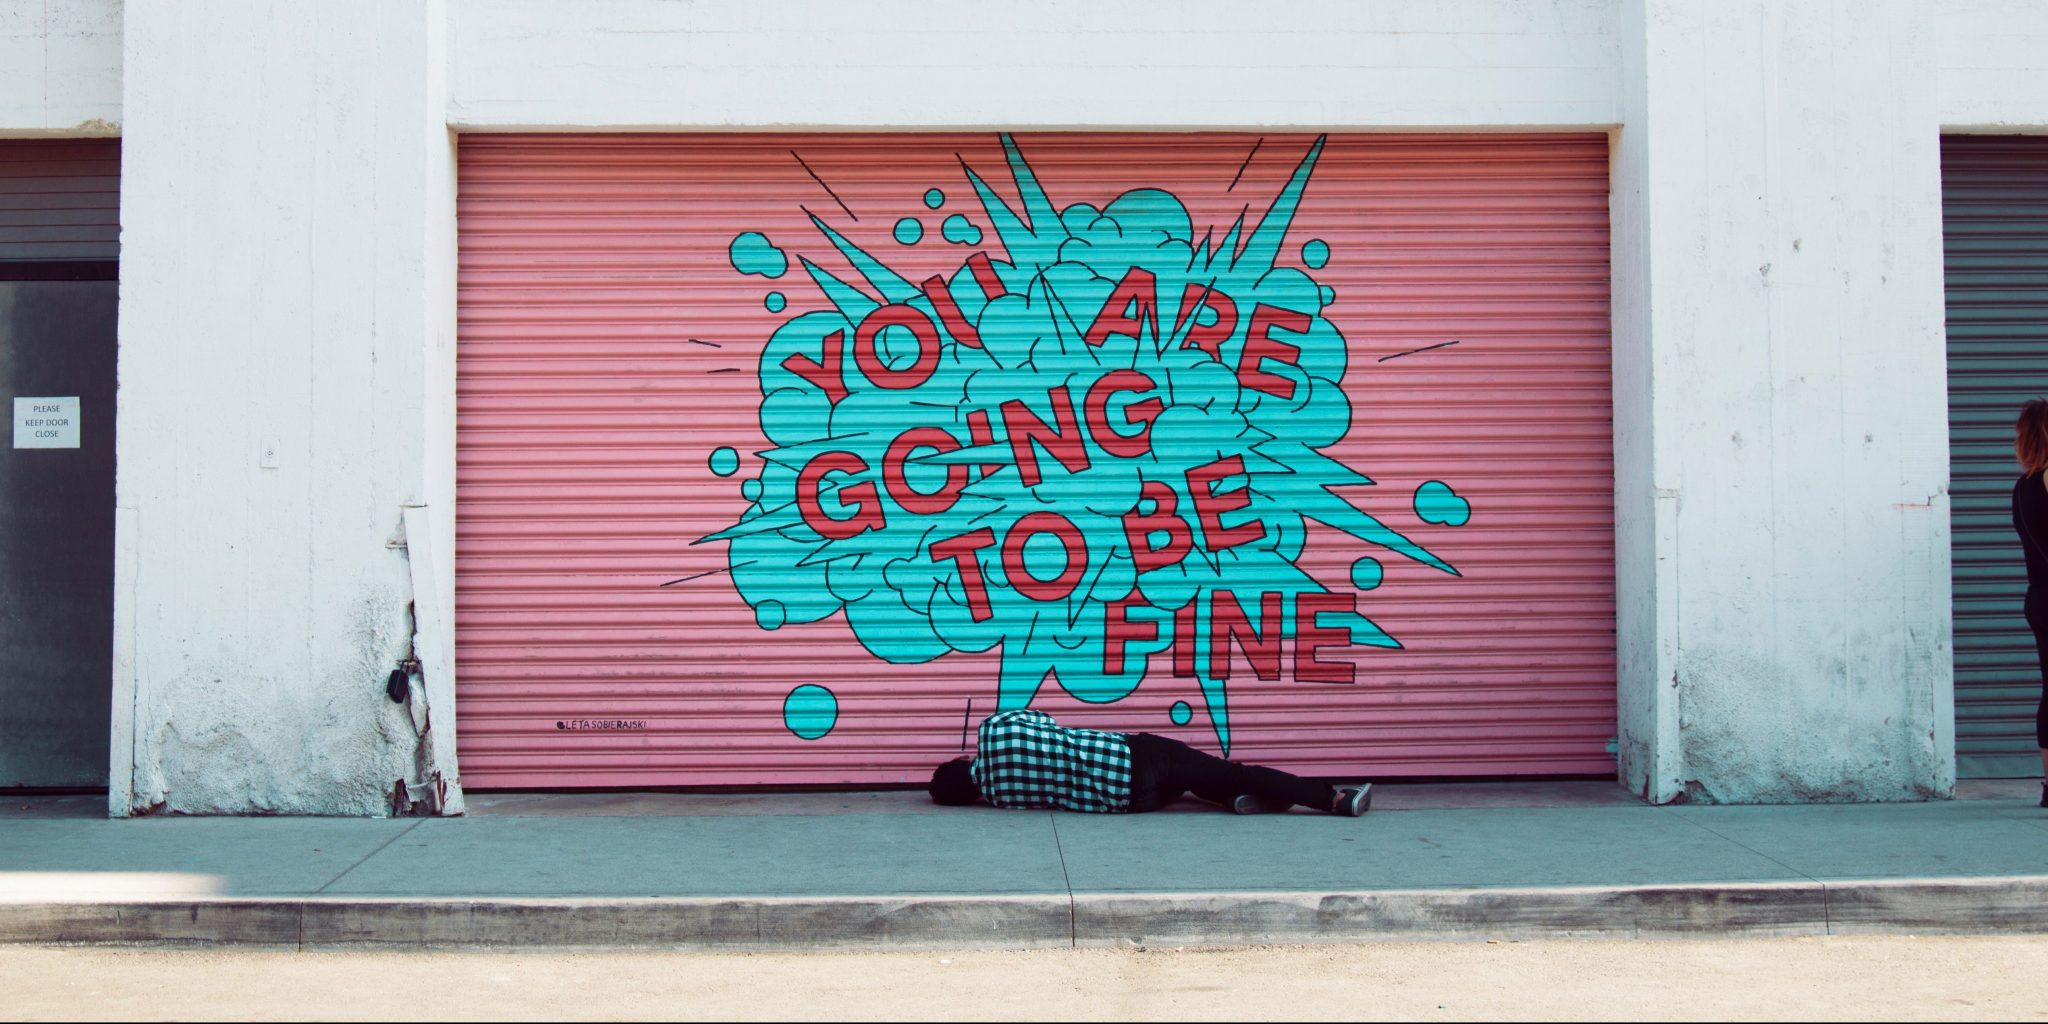 """Image of homeless person sleeping under street art that reads """"you are going to be fine"""""""